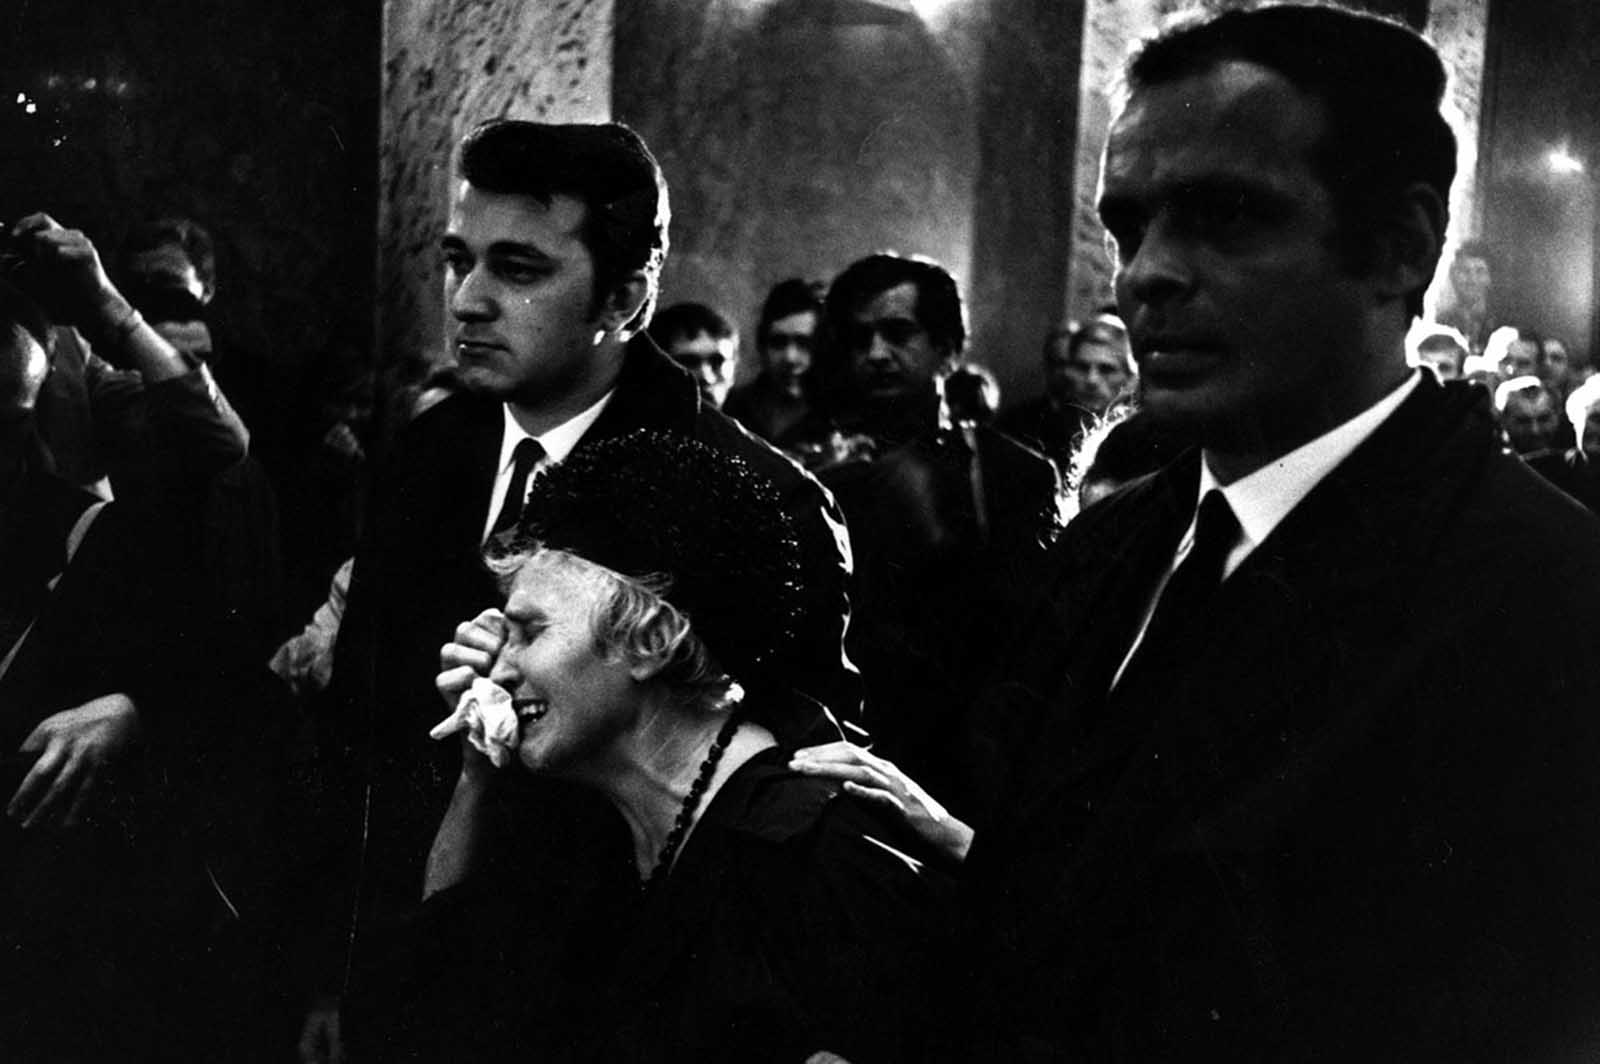 A woman weeps at a funeral for one of the victims of the fighting in Czechoslovakia.